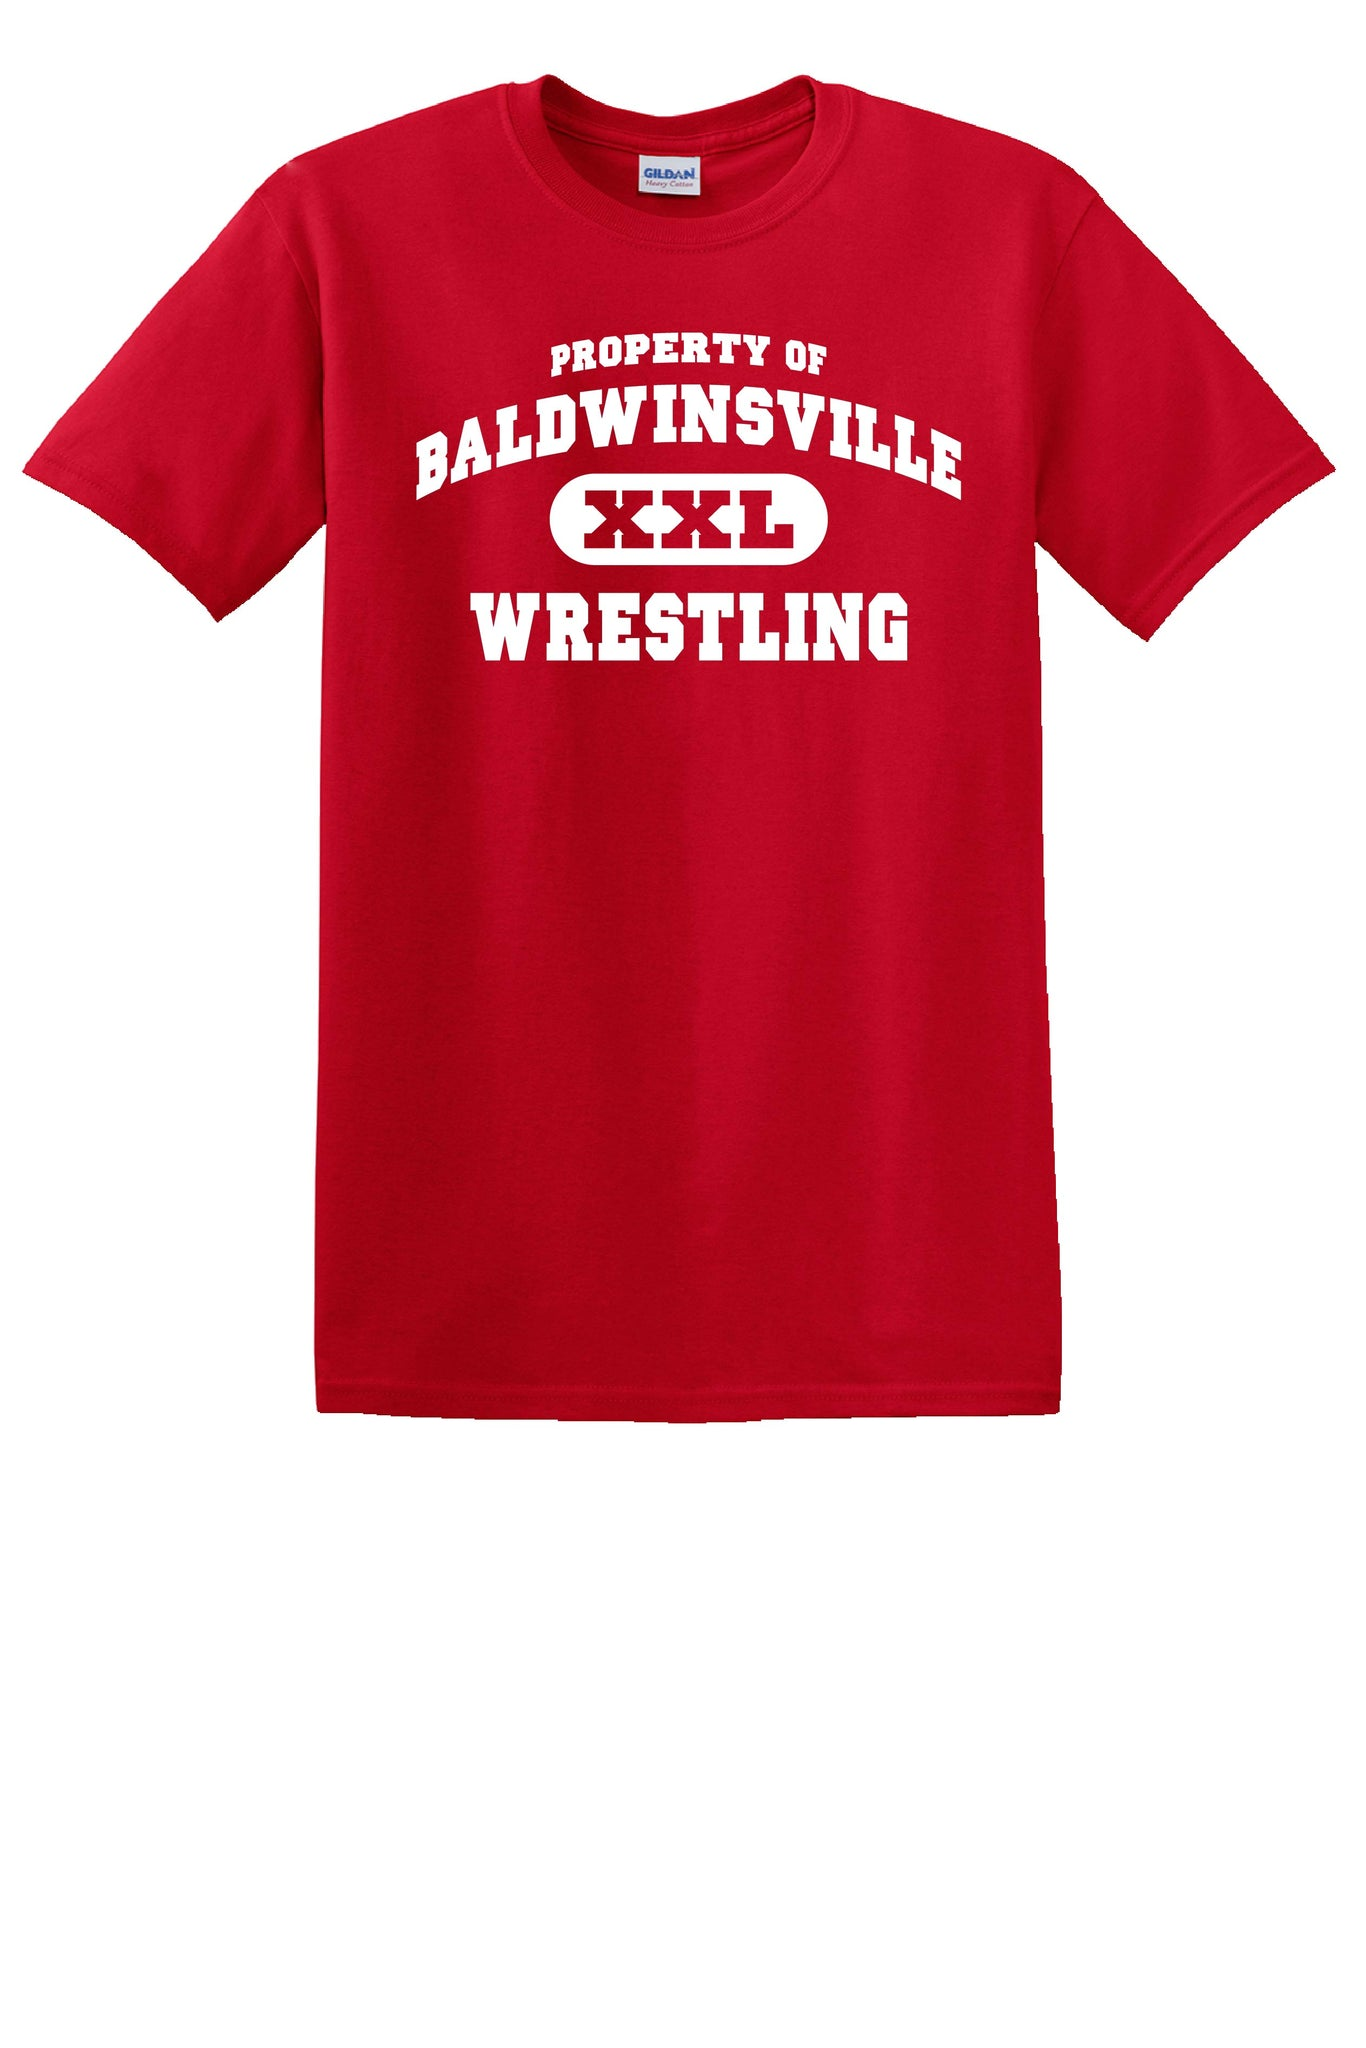 Gildan Short Sleeve T-Shirt - Property of Baldwinsville Wrestling - Red